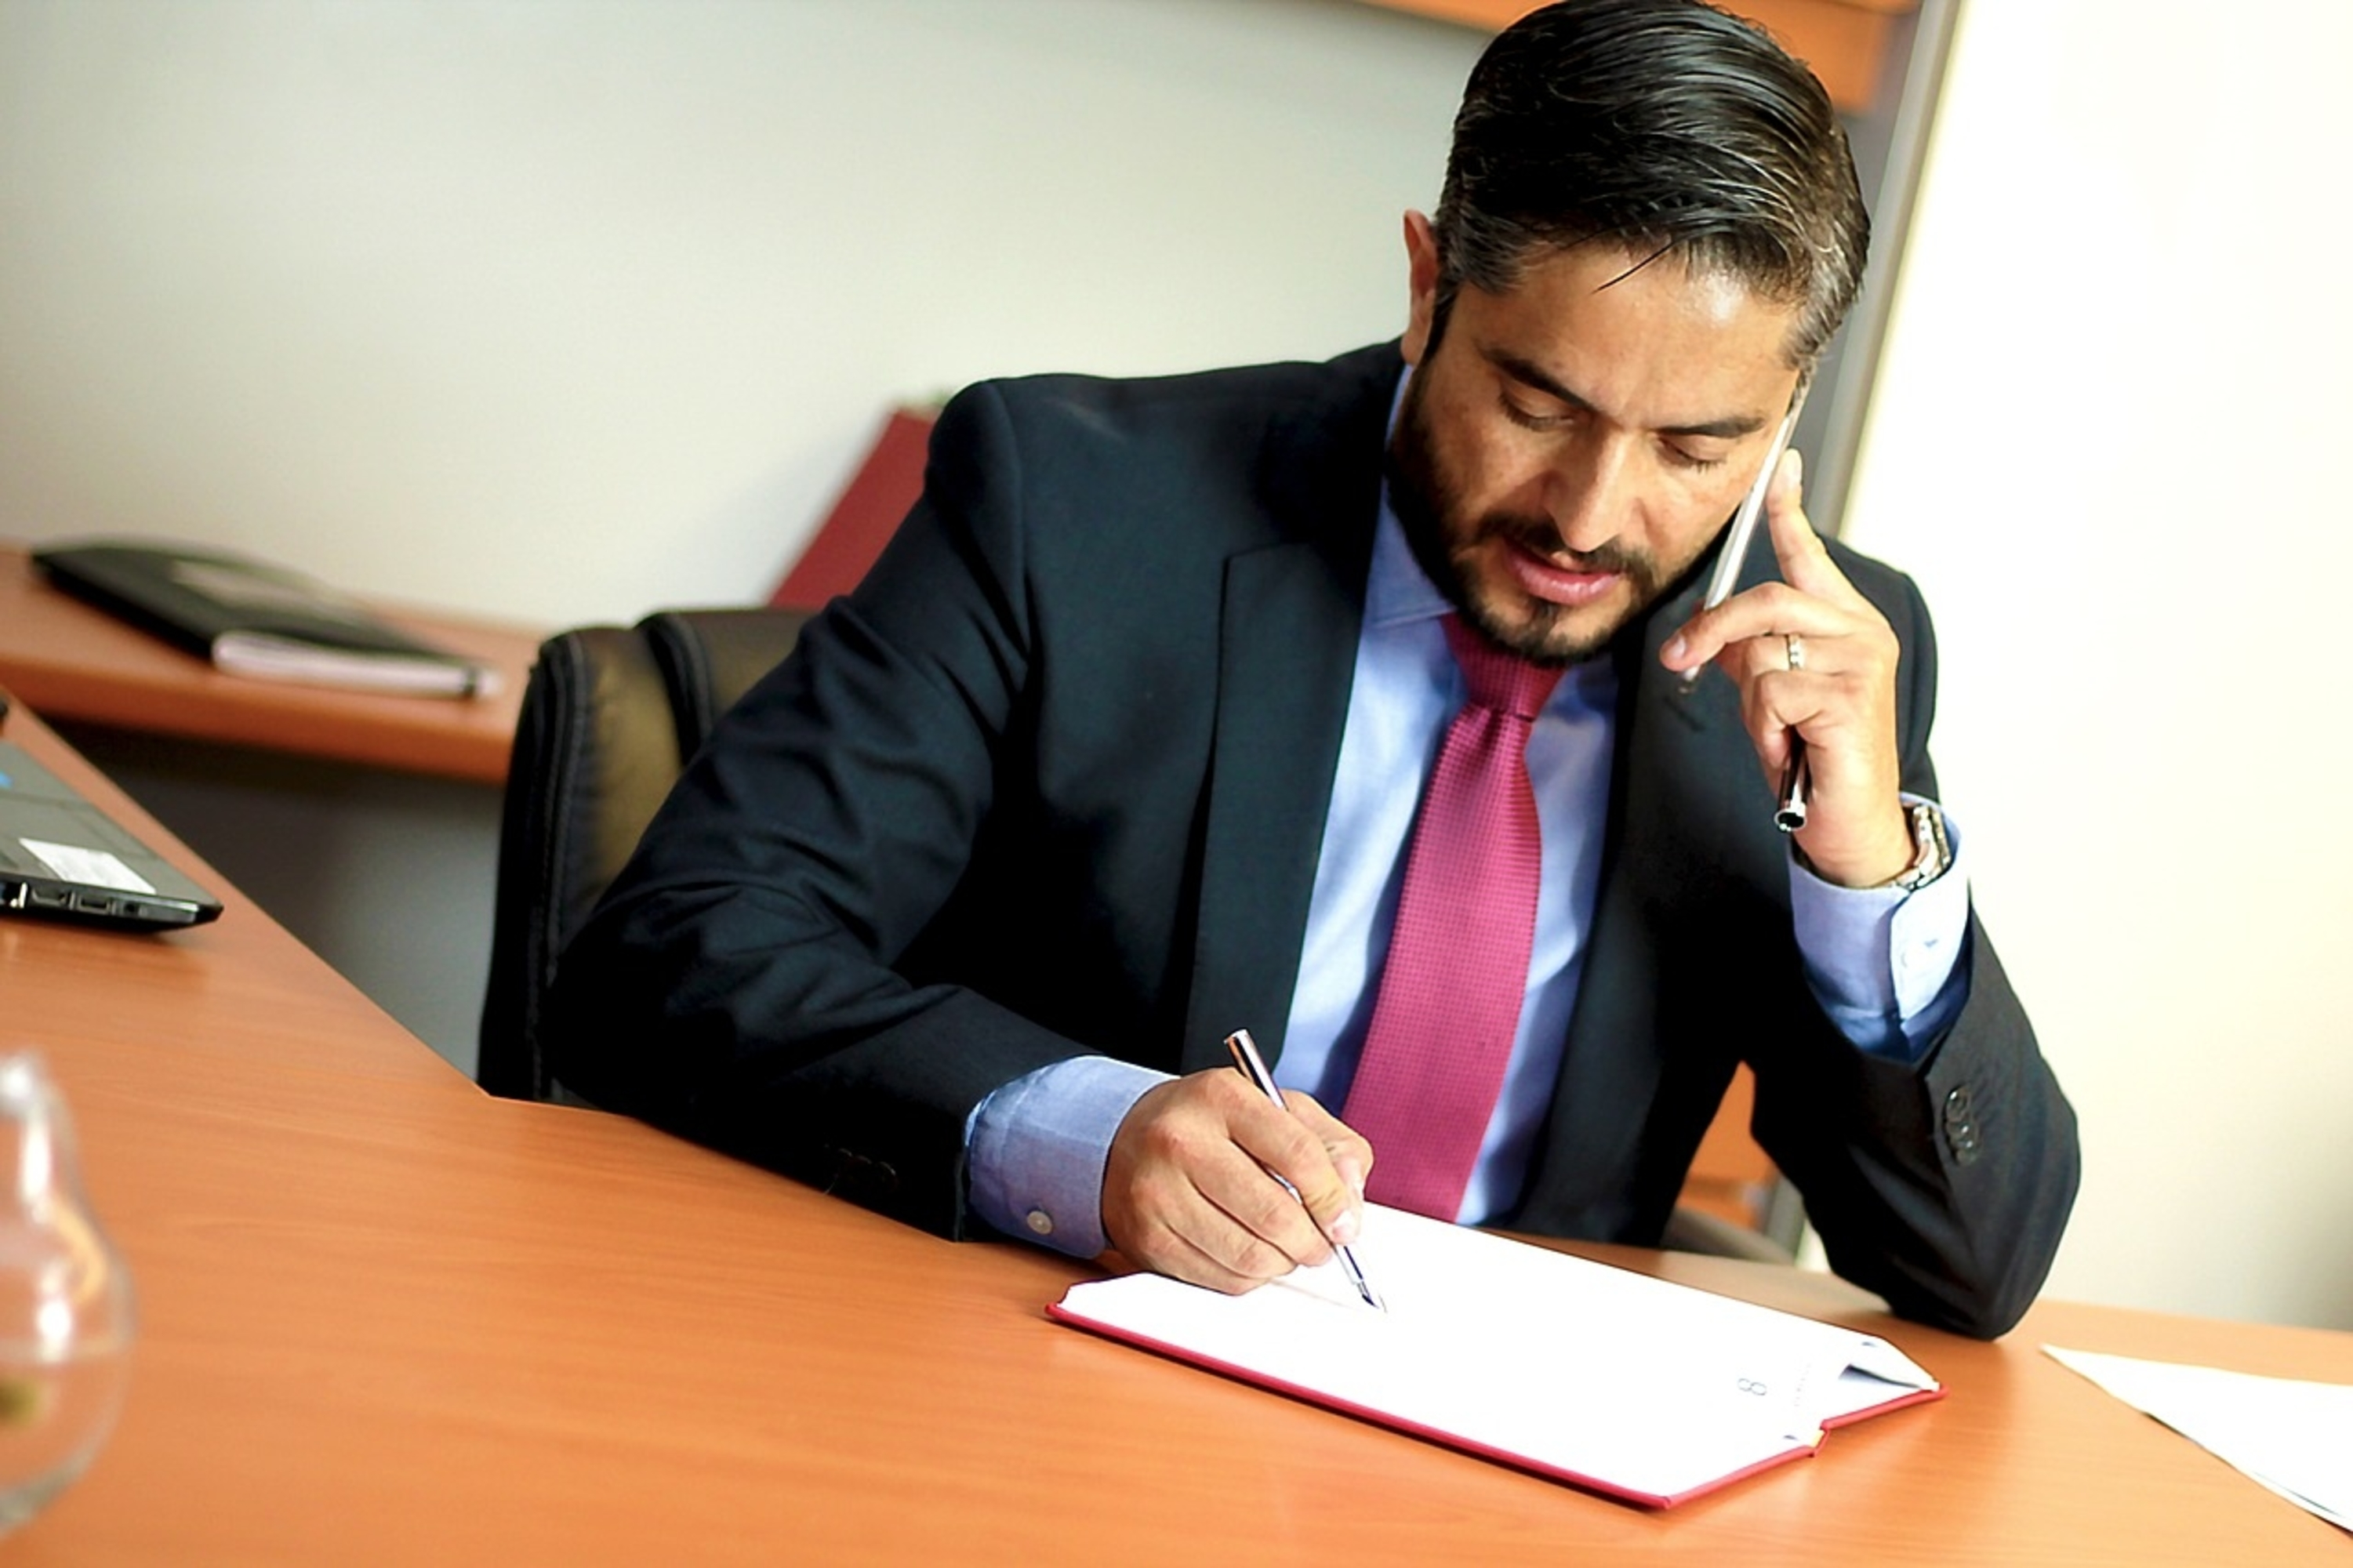 As an expert in his profession, he can organize the legal side of your business.